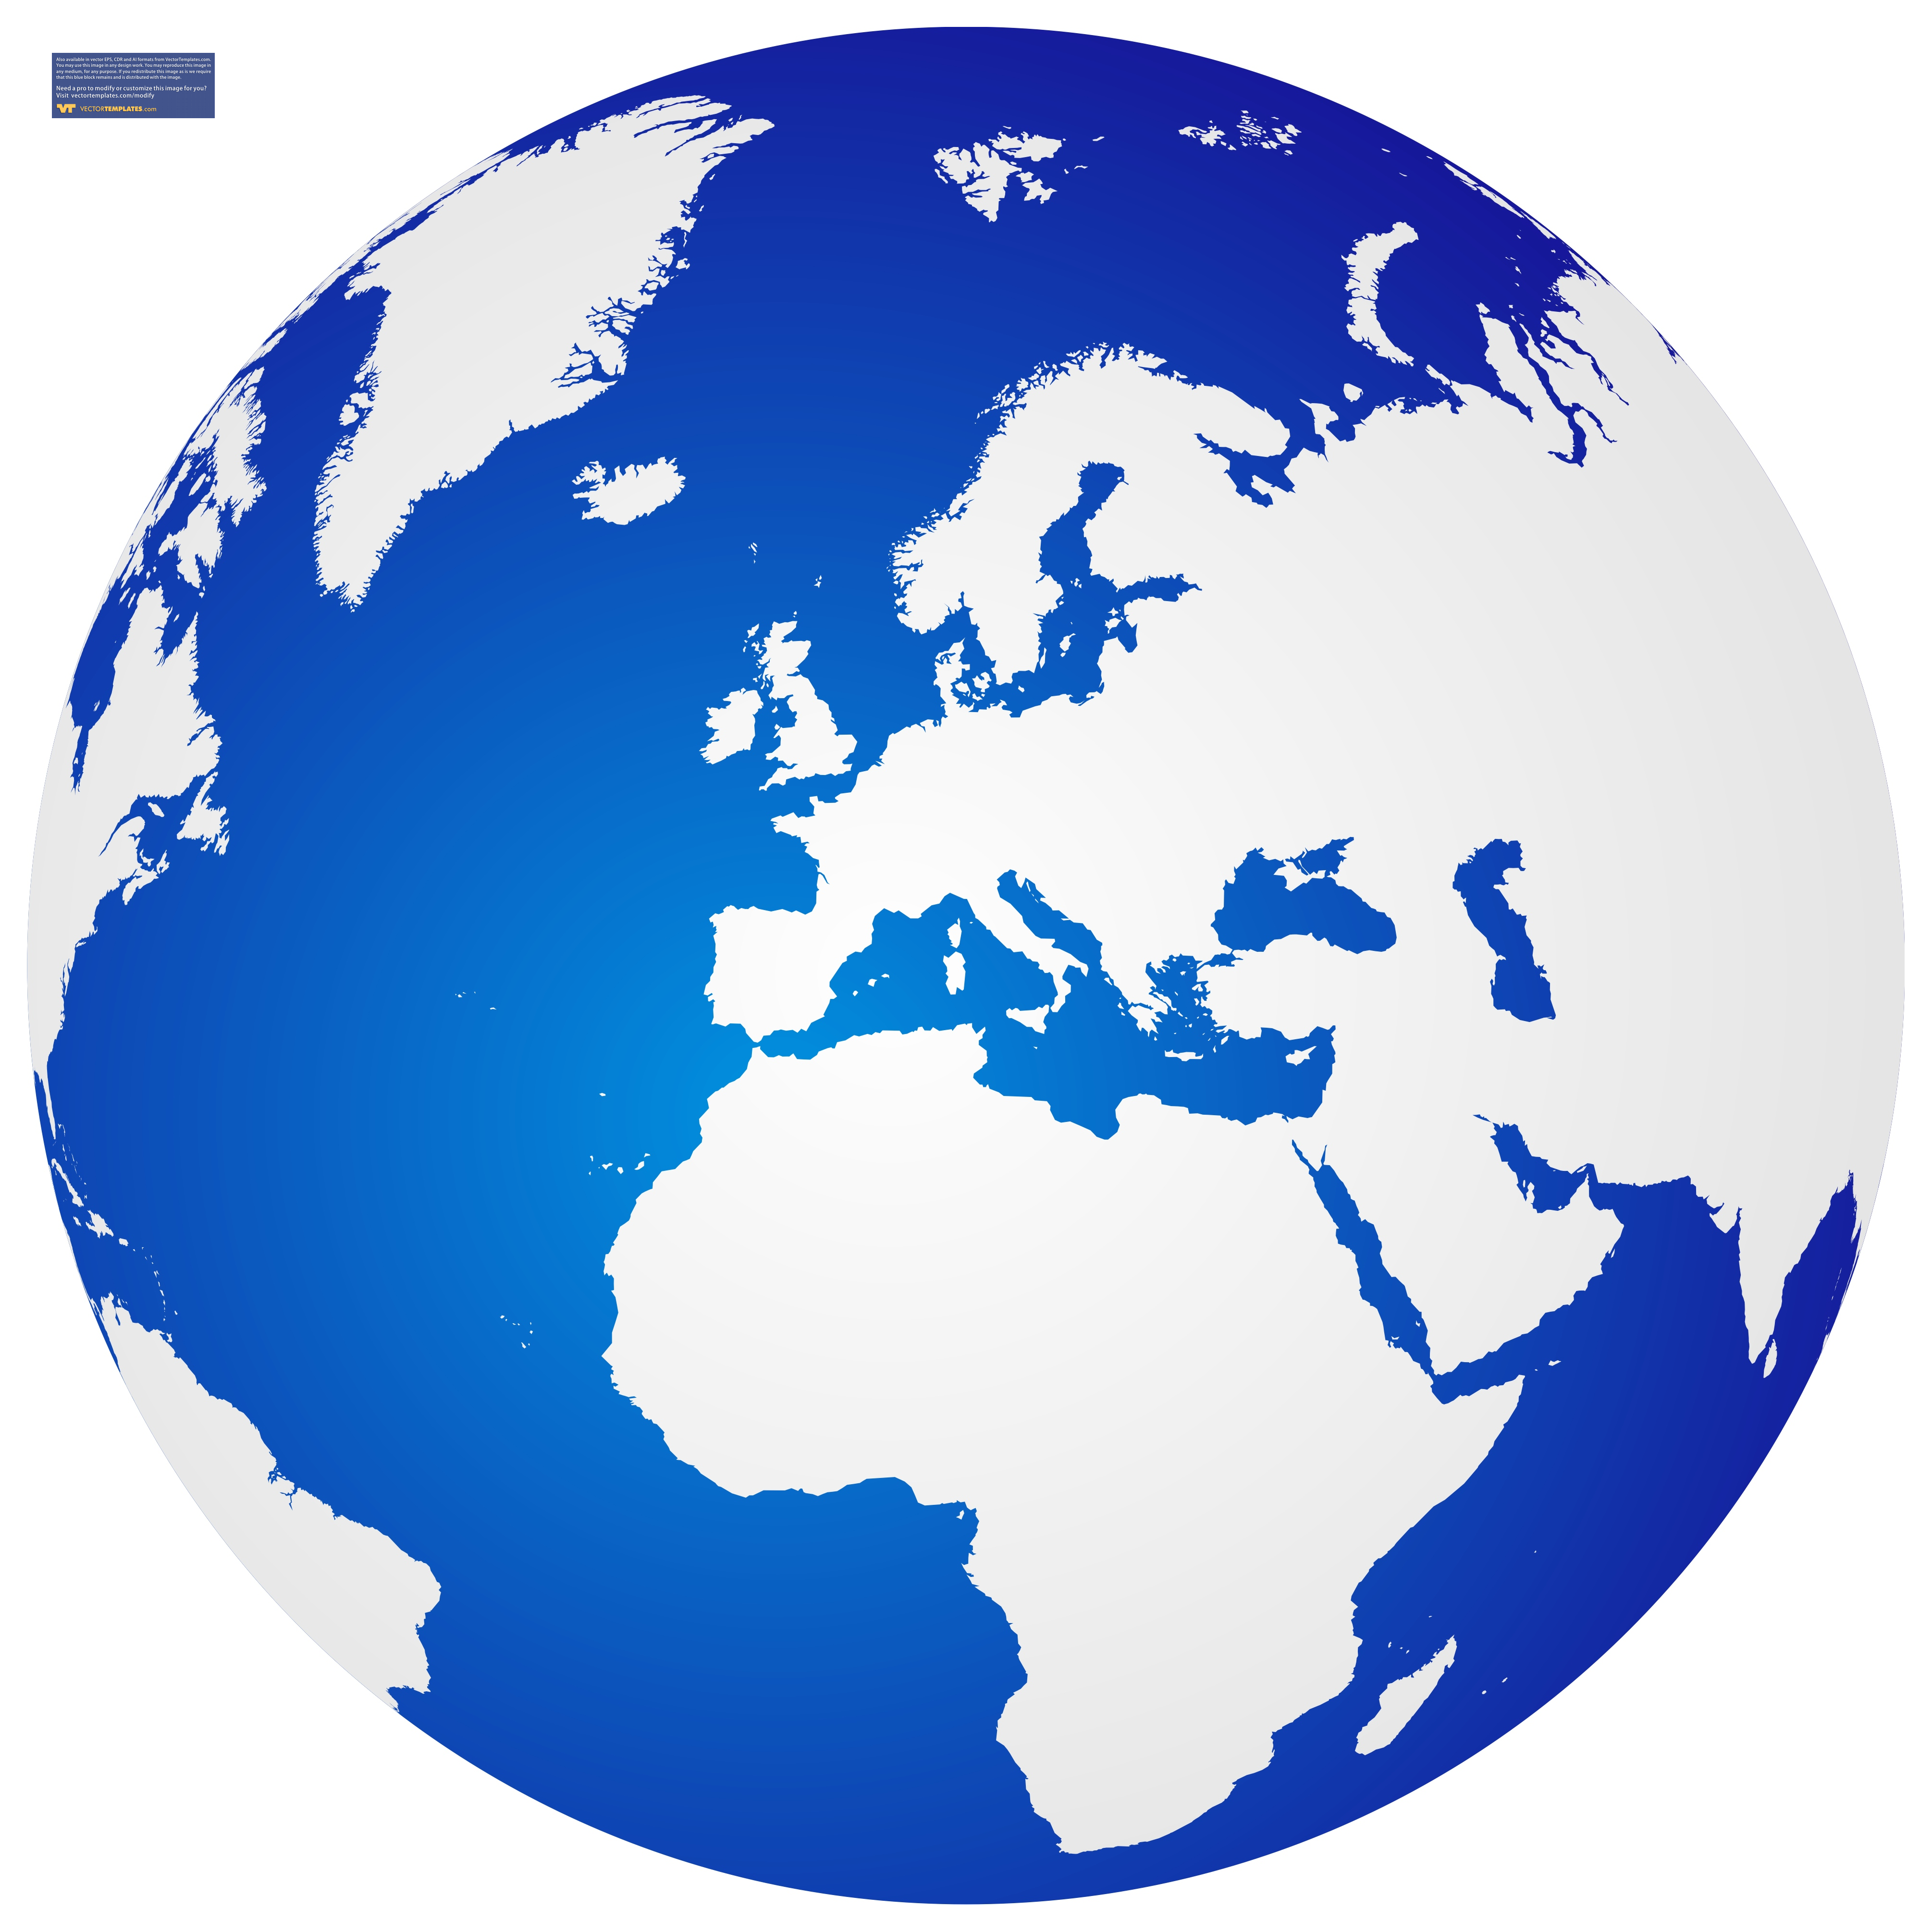 4021x4021 Free Png Hd World Globe Transparent Hd World Globe.png Images